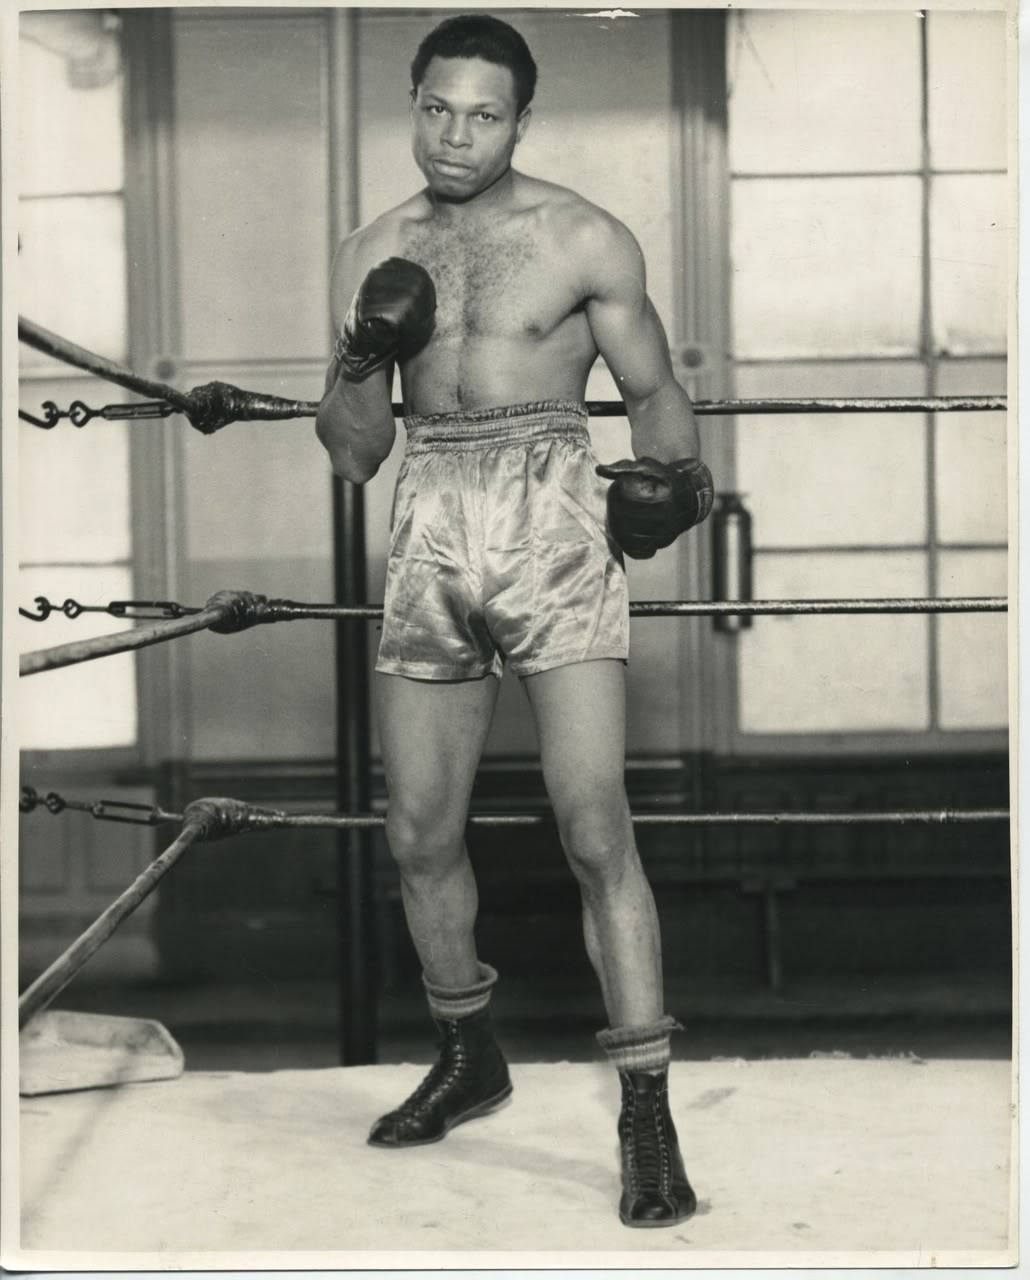 Mike Silver, Author at Boxing Over Broadway